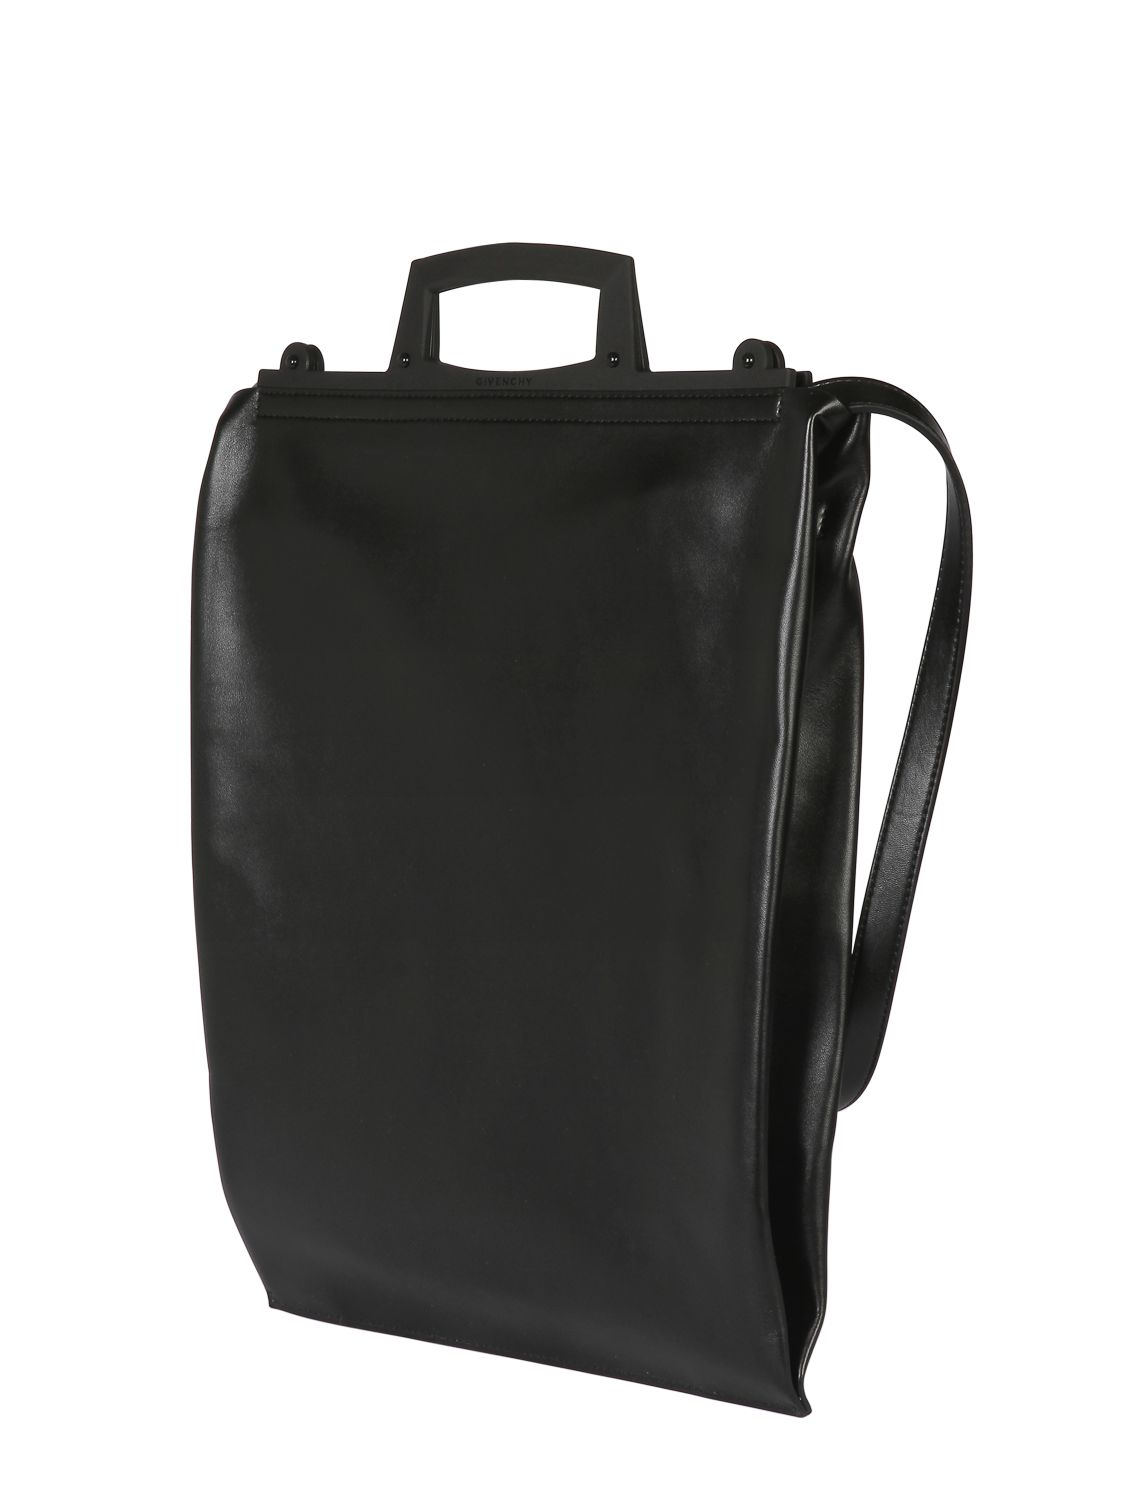 ea79bbb47fd5 Lyst - Givenchy Rave Shiny Leather Shopping Bag in Black